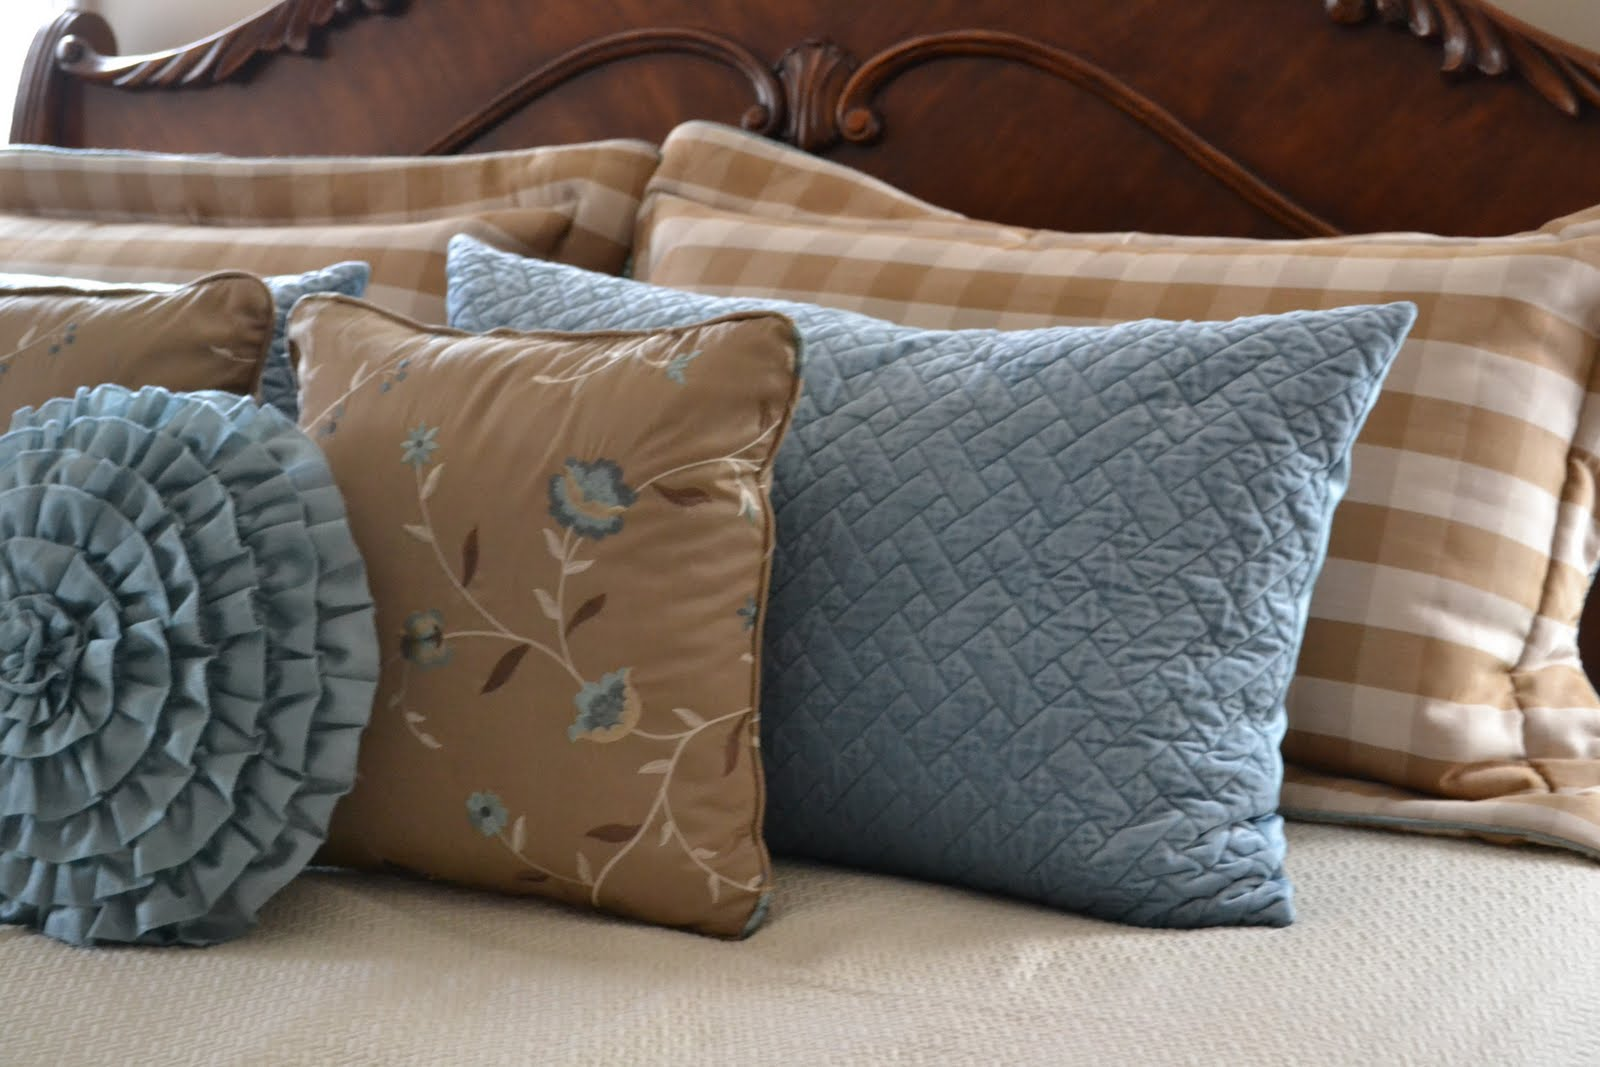 Well-liked How to Make a Pillow Sham - Part 1 | Worthing Court MX35